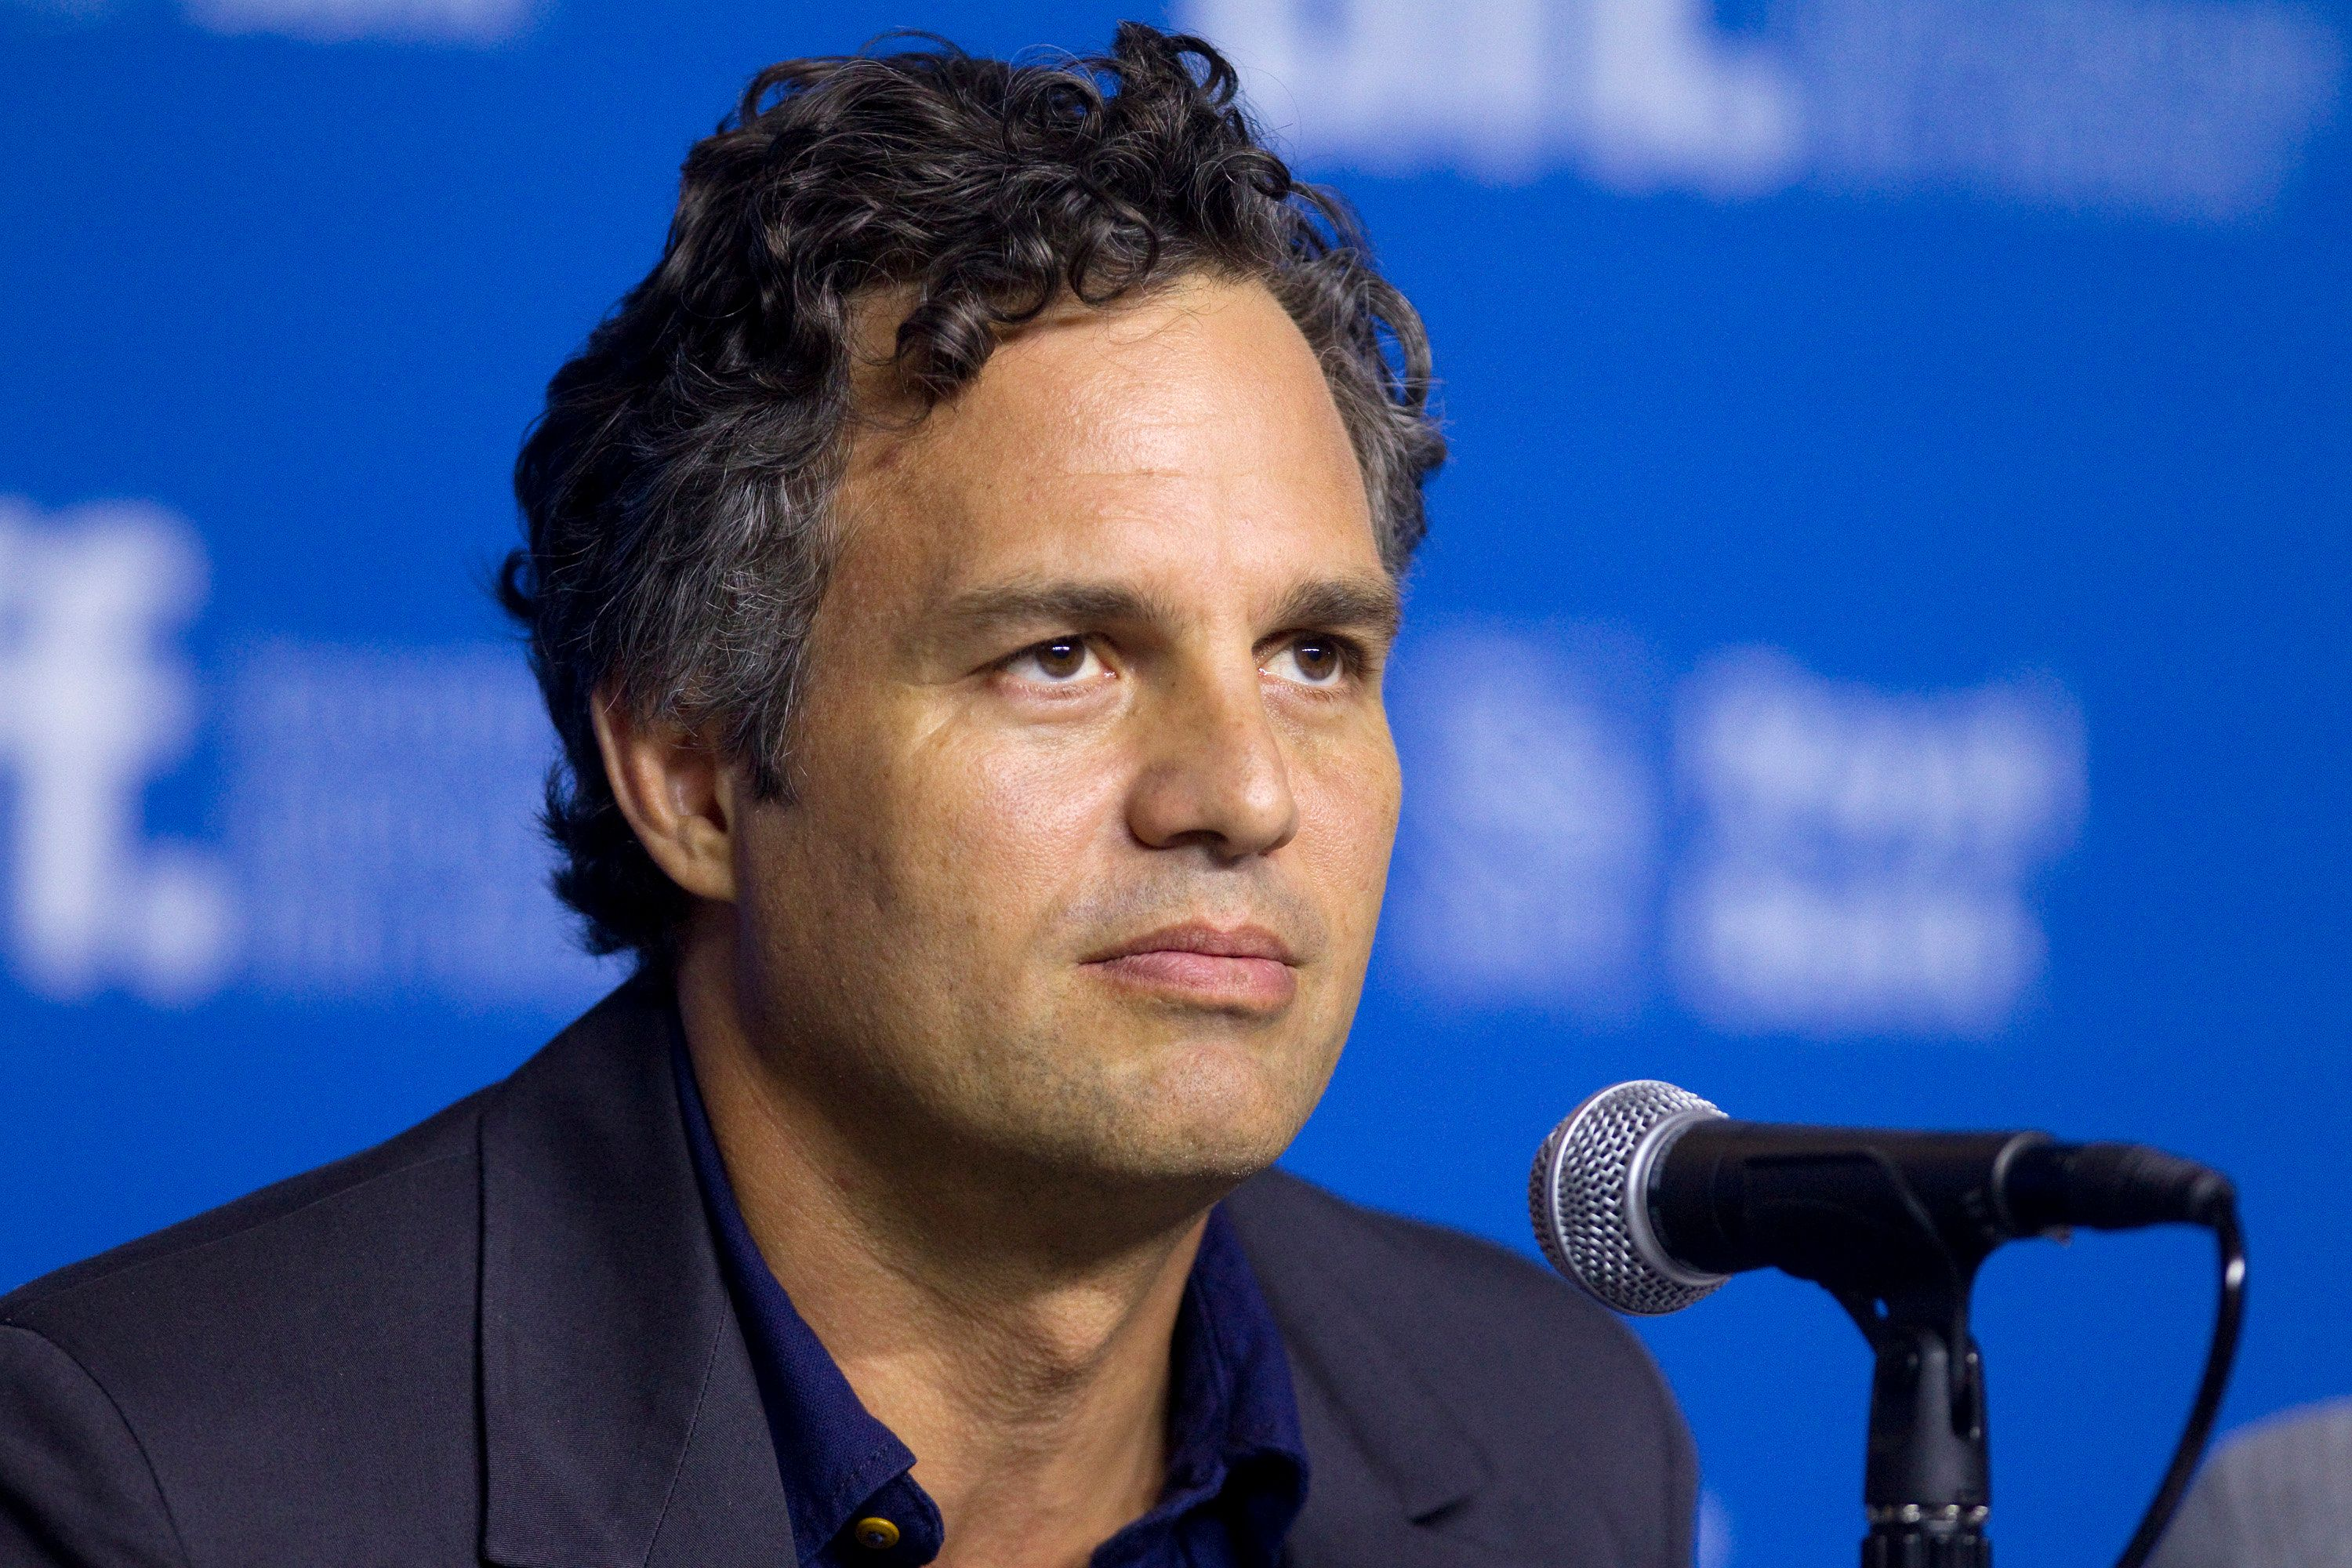 Actor/producer Mark Ruffalo addressed the controversy over casting Matt Bomer as a transgender sex